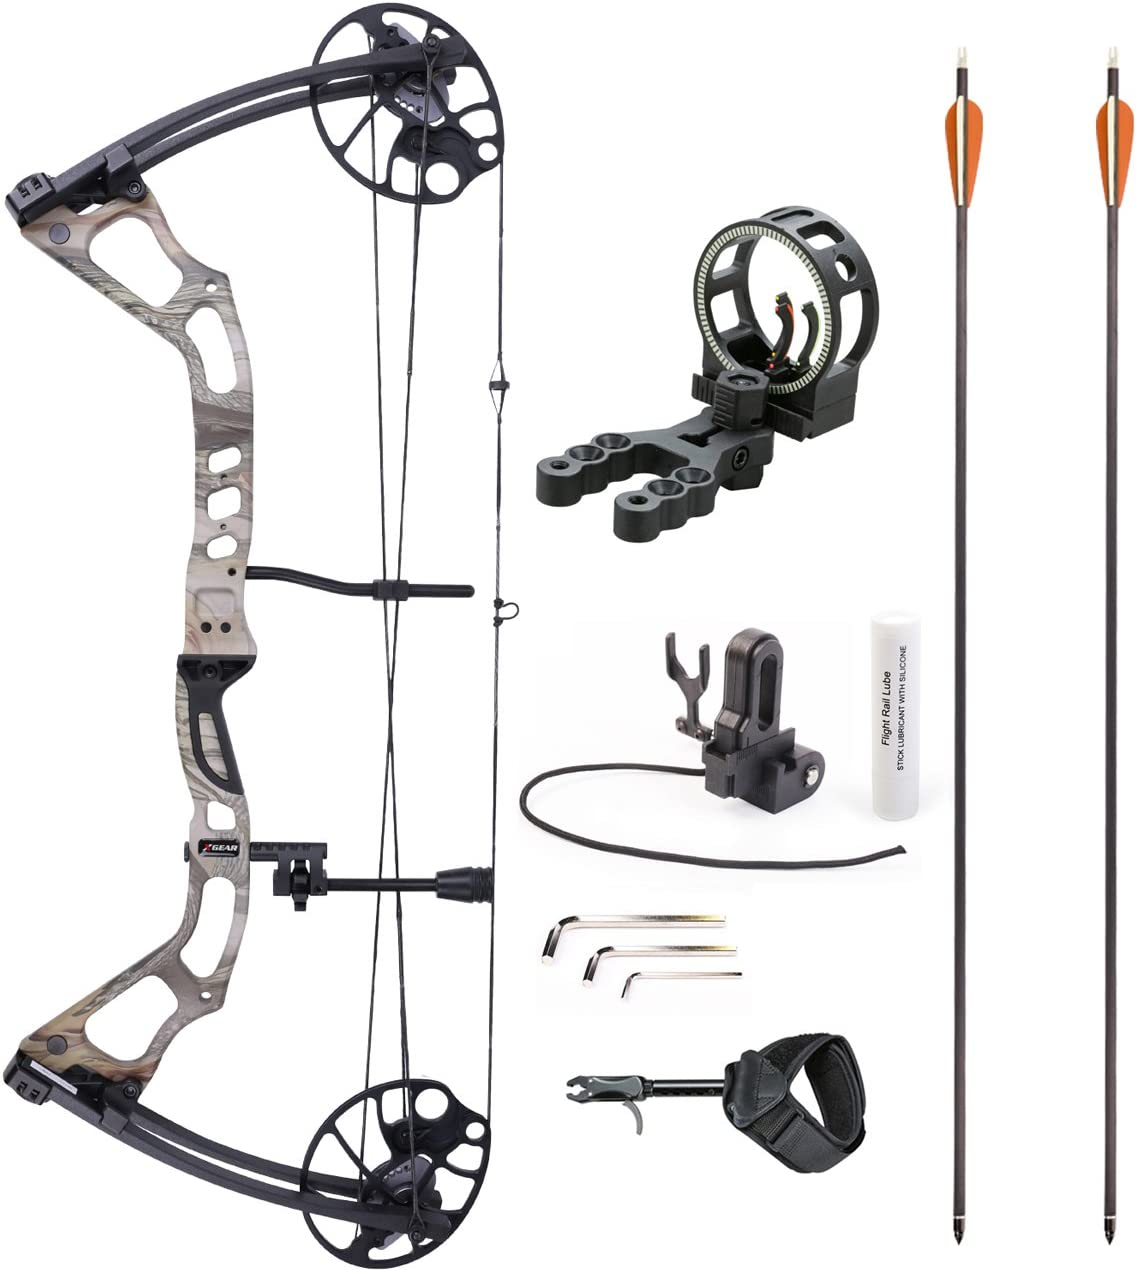 Leader Accessories Compound Bow 25-70lbs 19 – 31 Archery Hunting Equipment with Max Speed 300fps, Right Handed